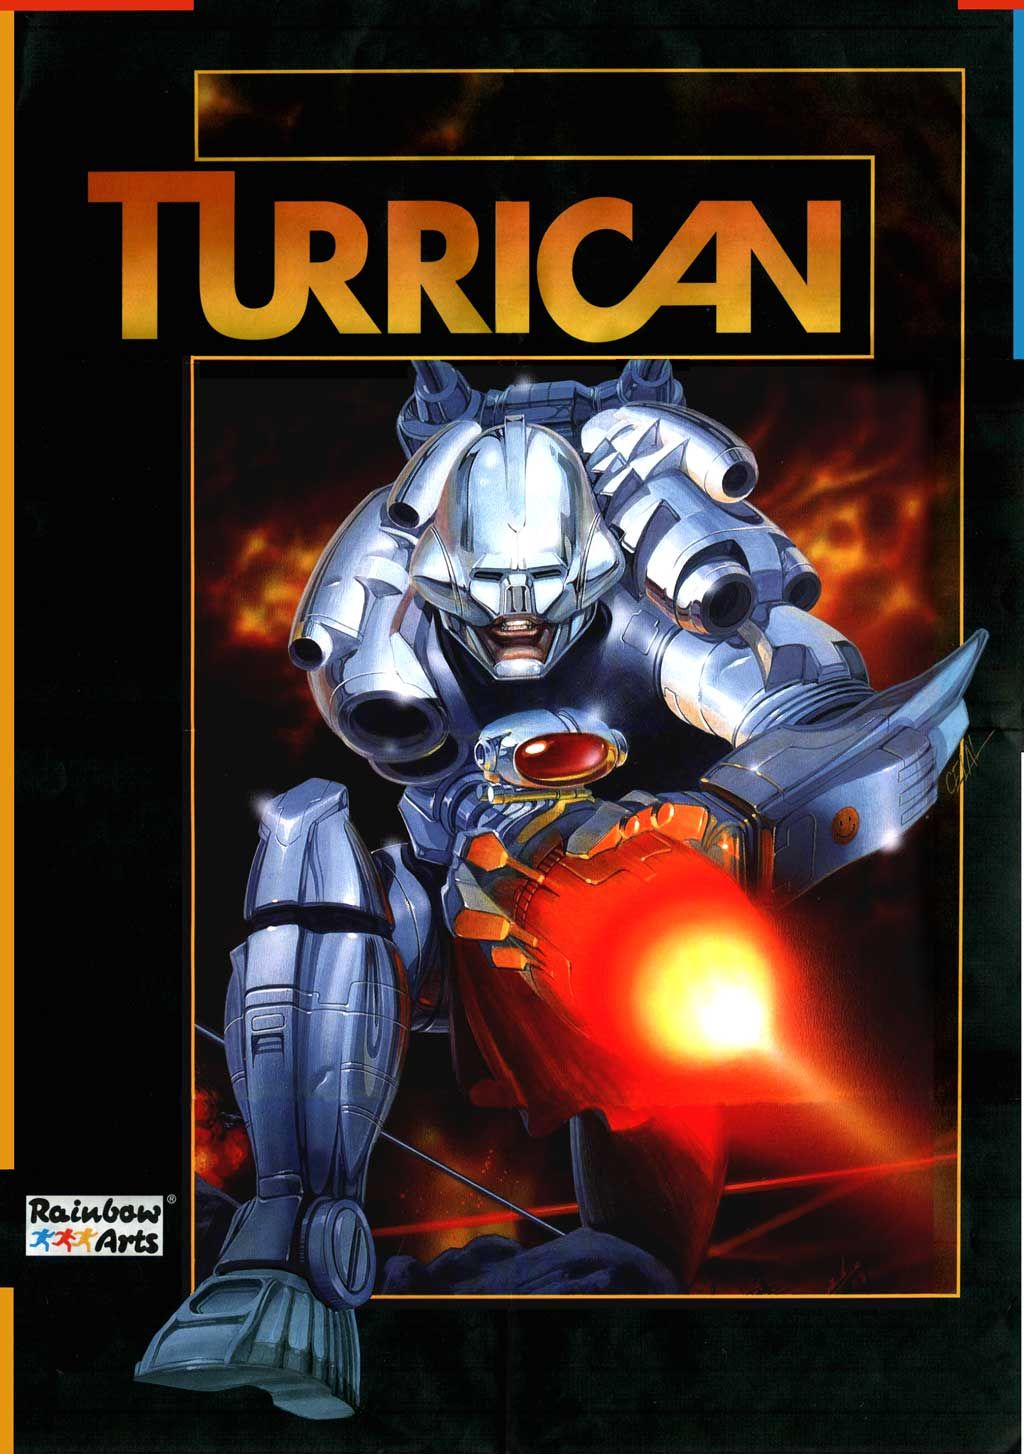 Turrican - My favorite Commodore 64 game of ALL TIME!   70s